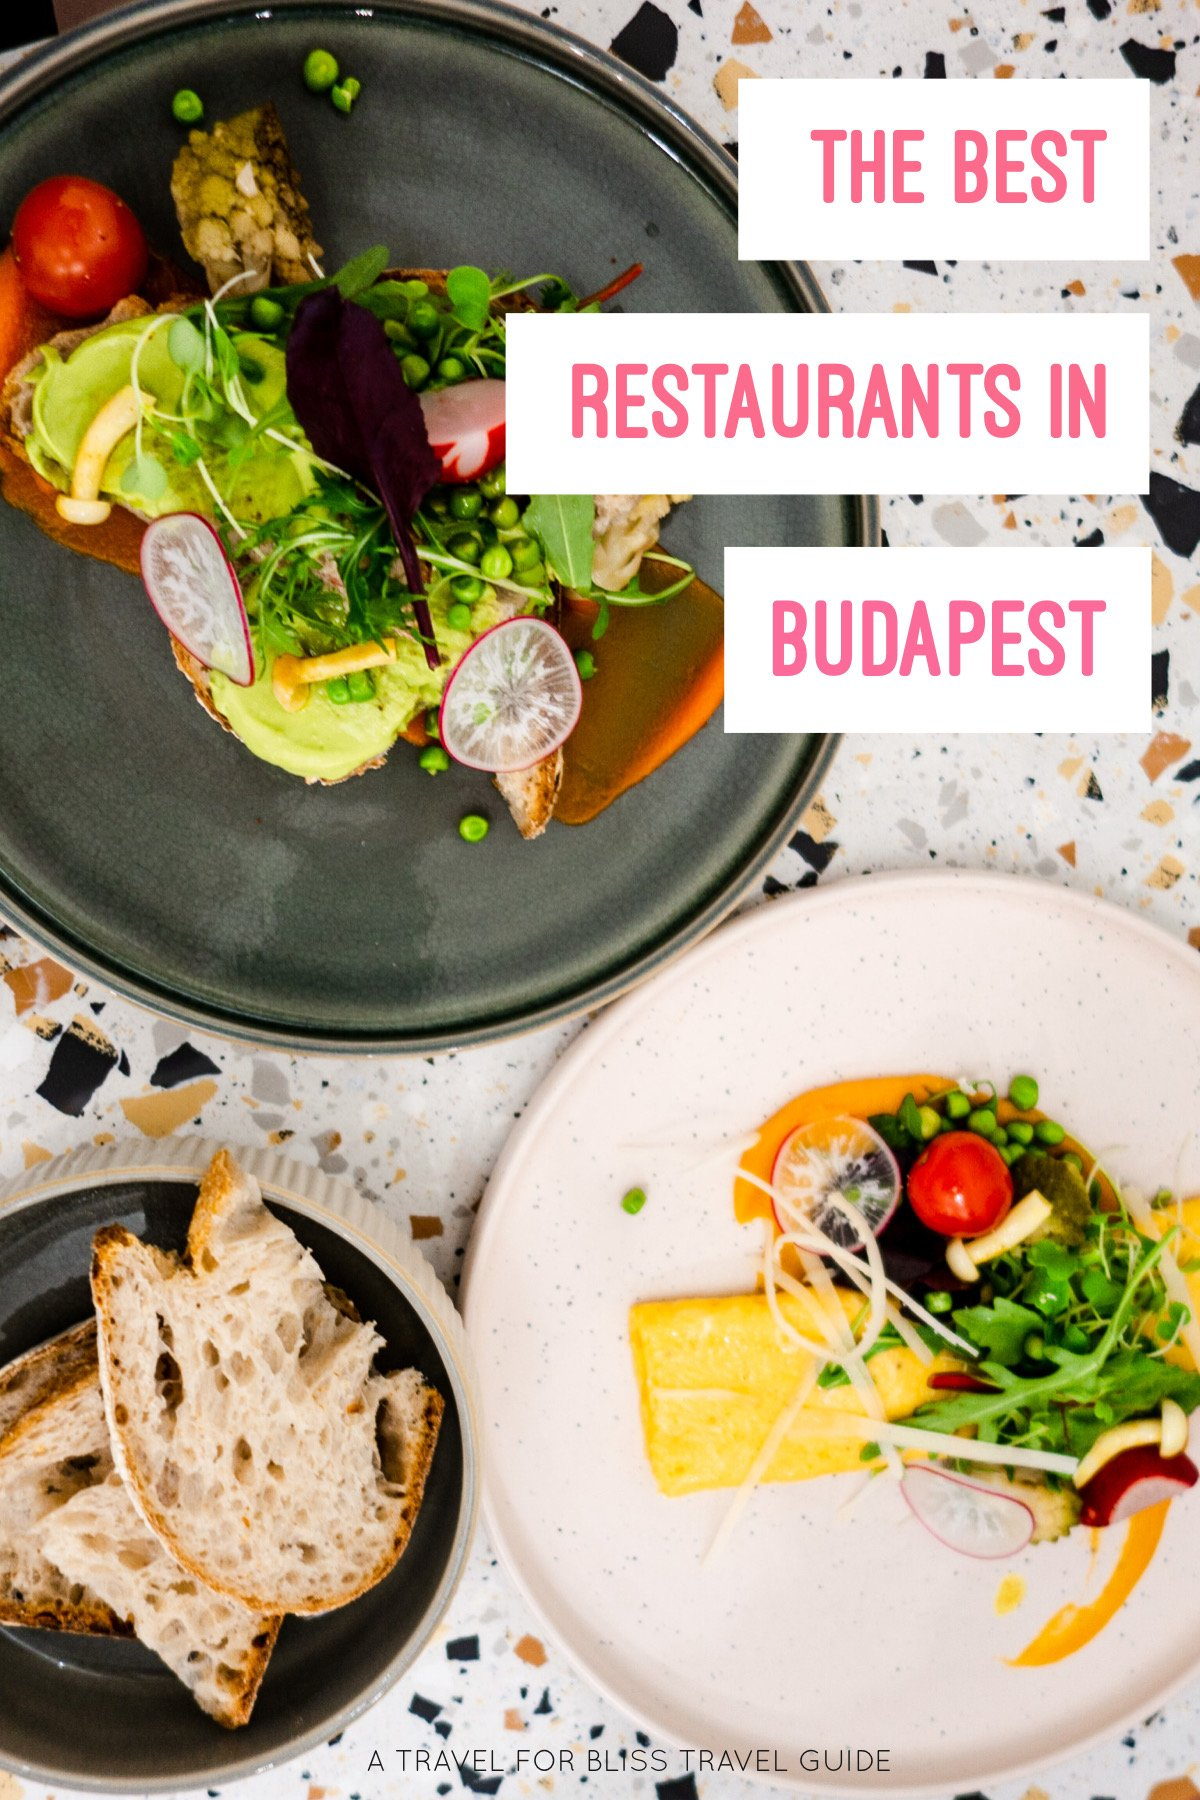 The Best Restaurants In Budapest. Where to eat in Budapest Hungary. Traditional hungarian restaurants as well as modern hungarian food.